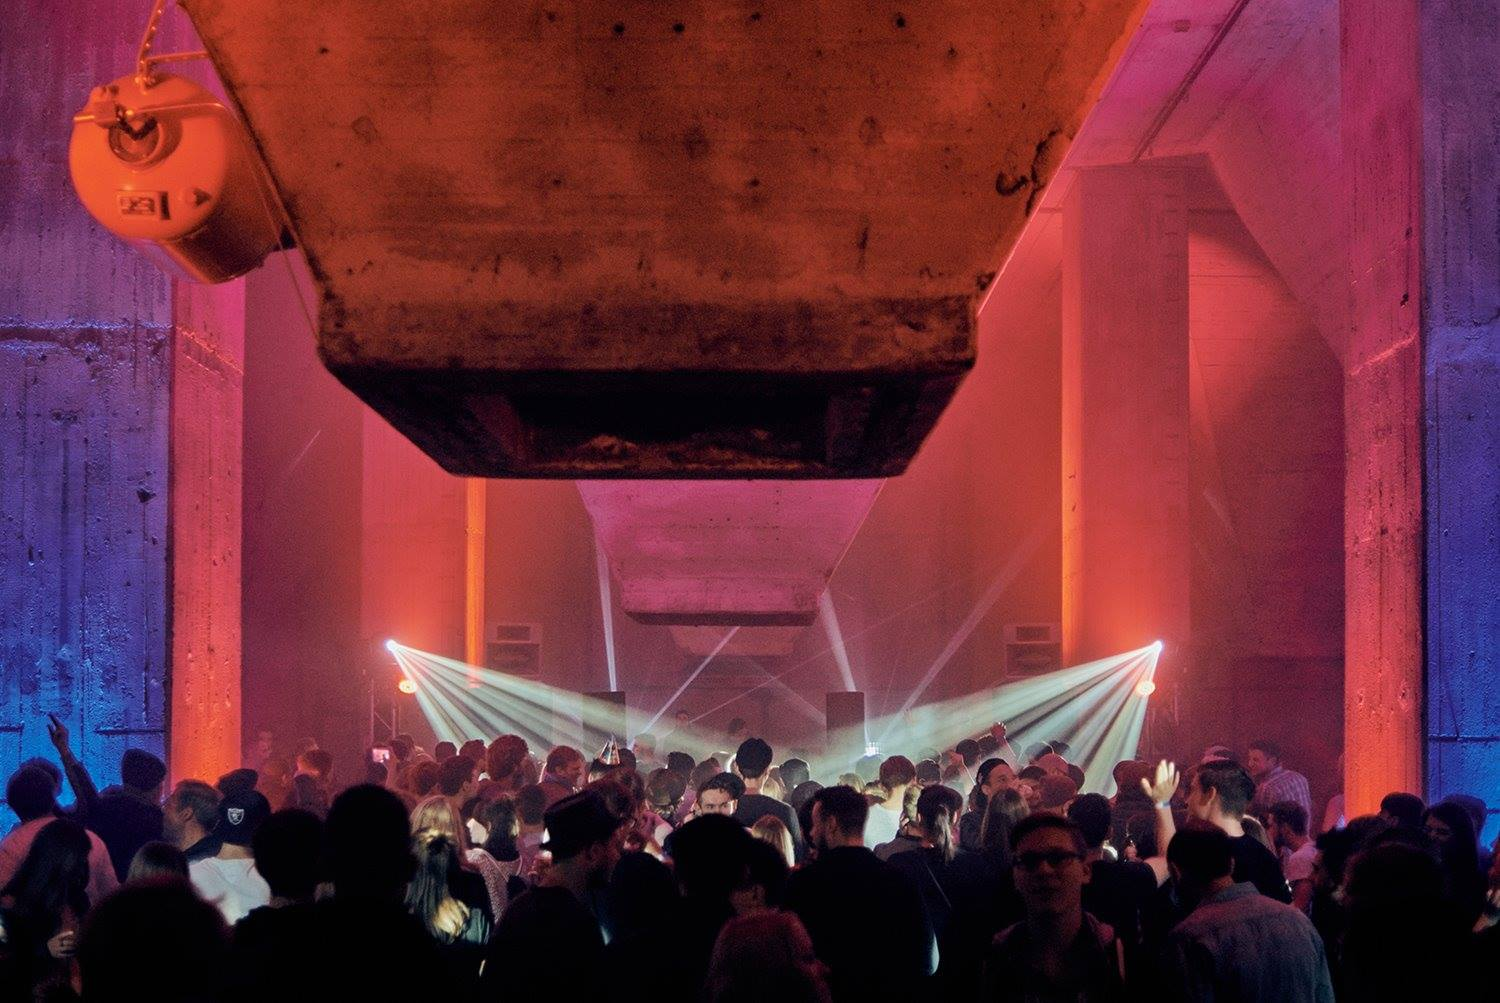 Mischanlage is a venue at Kokerei Zollverein